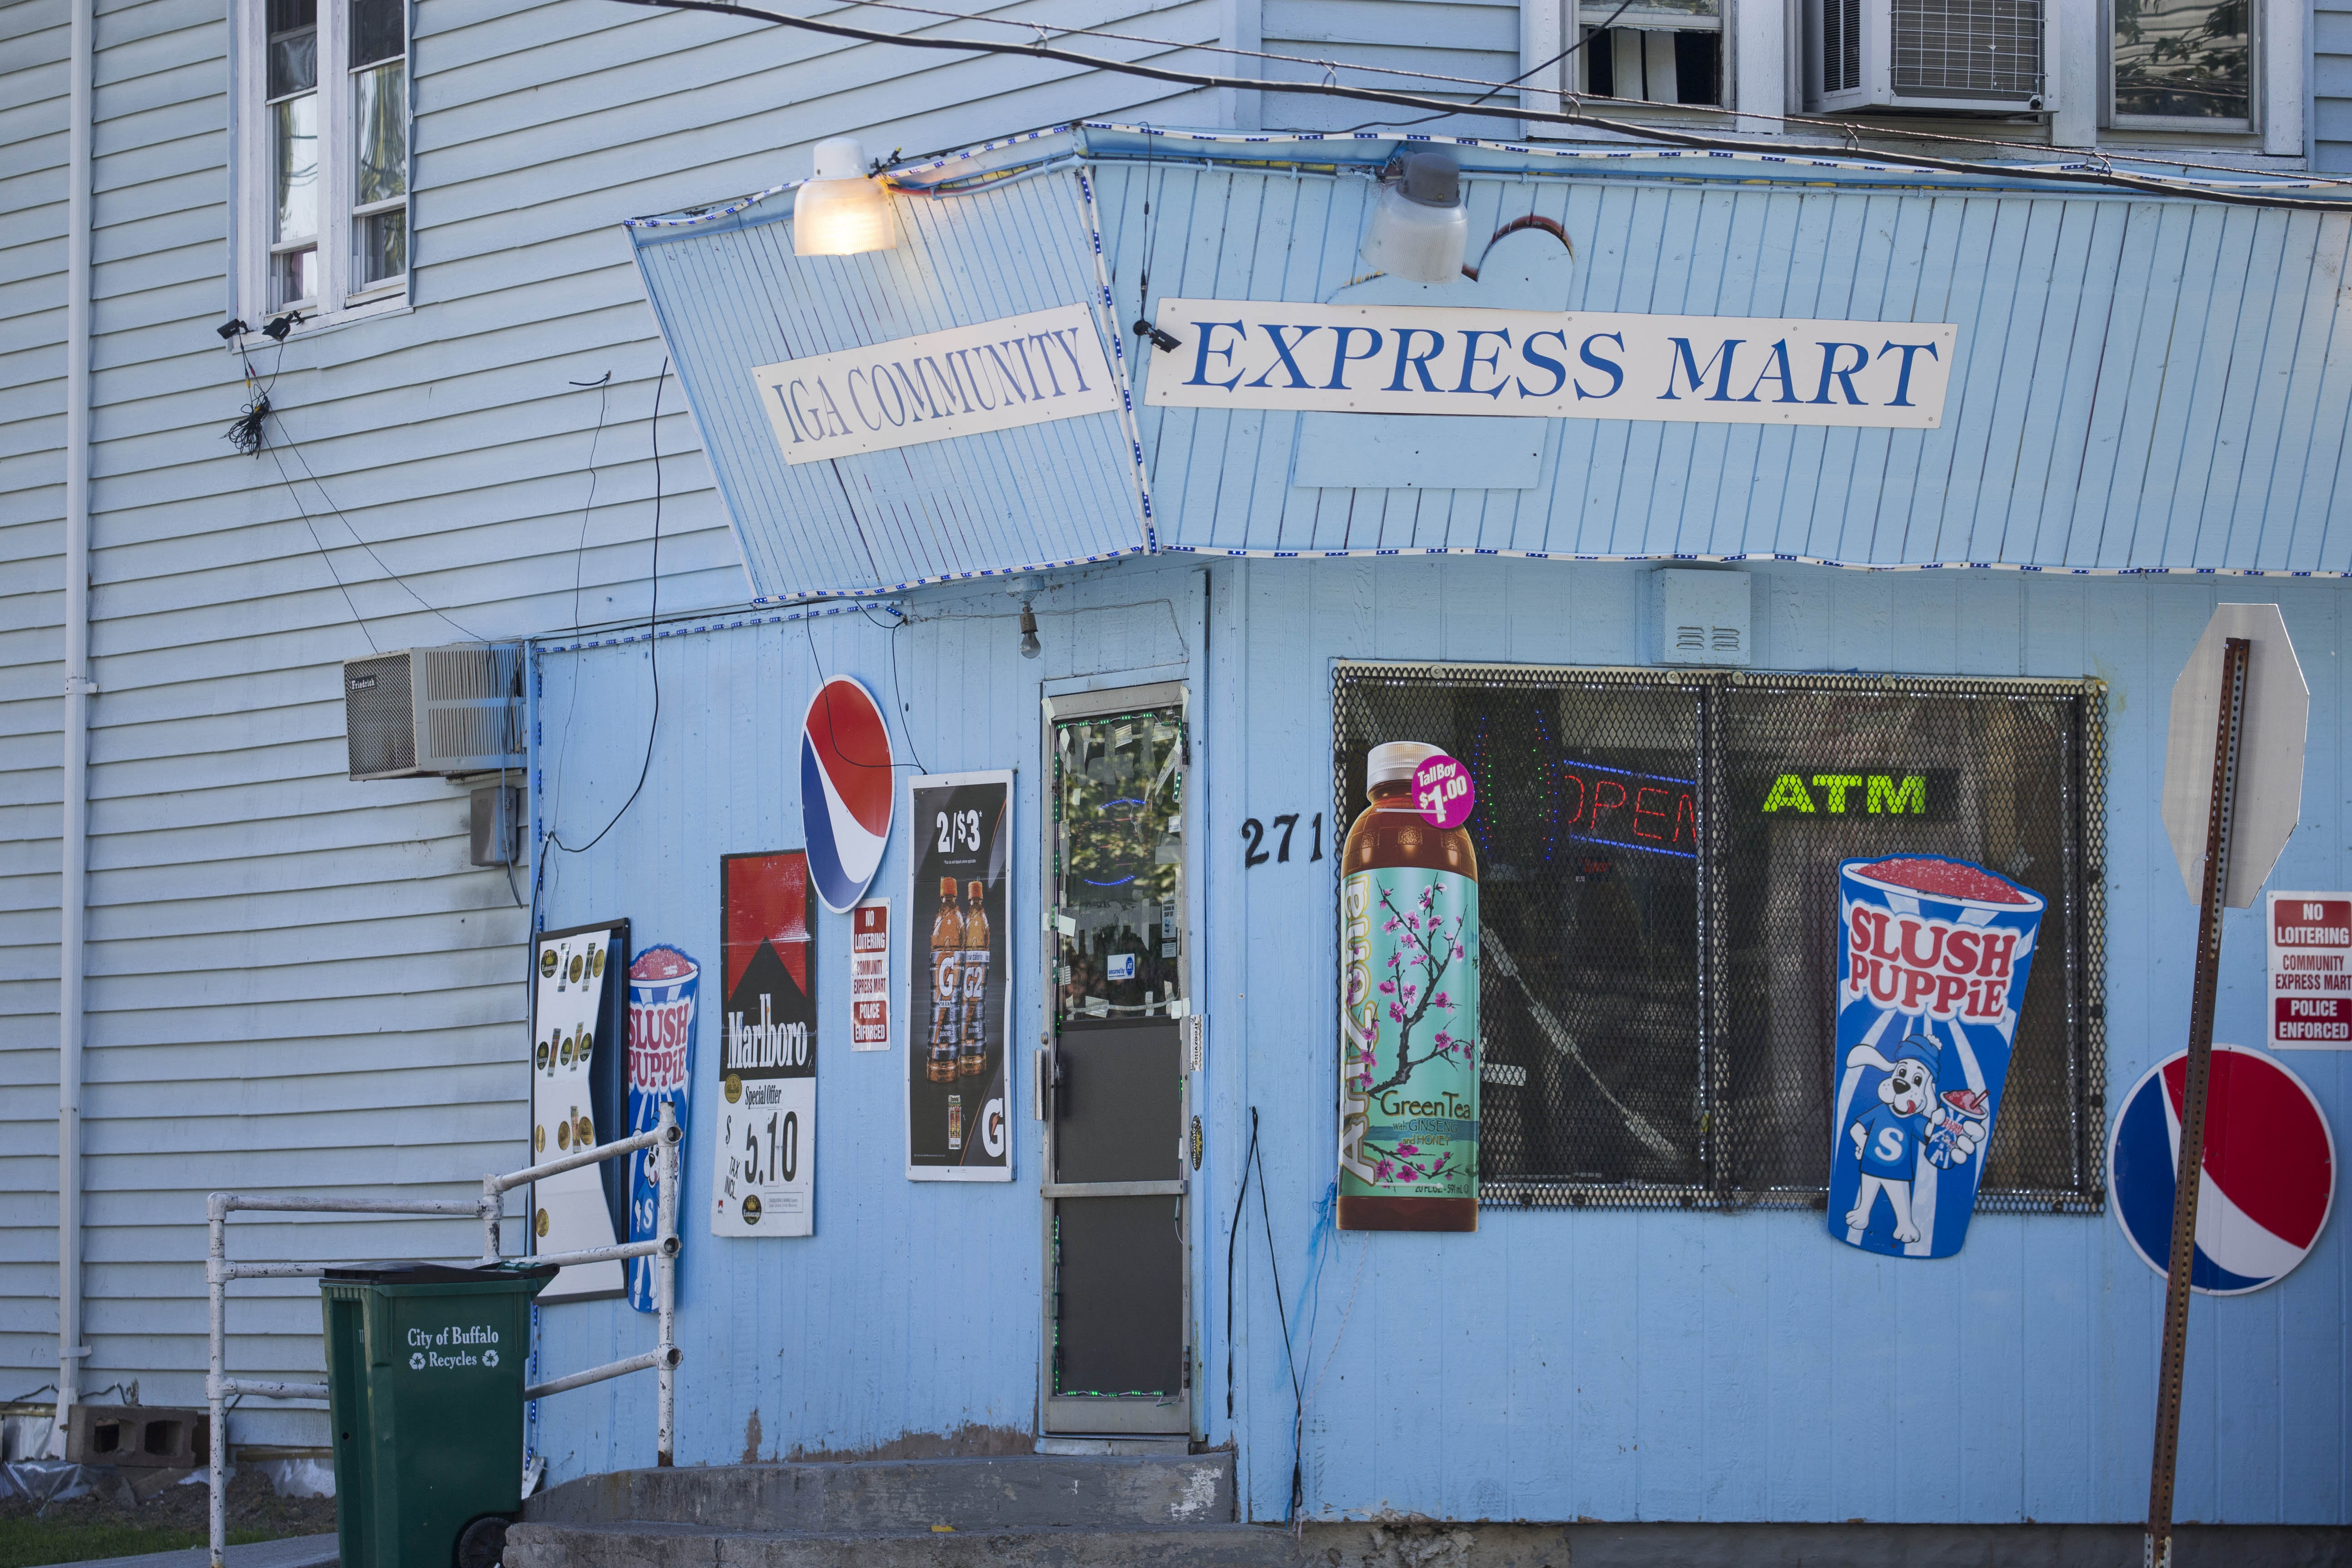 The IGA Community Express Mart in Lovejoy could have its city license revoked. (Derek Gee/Buffalo News)